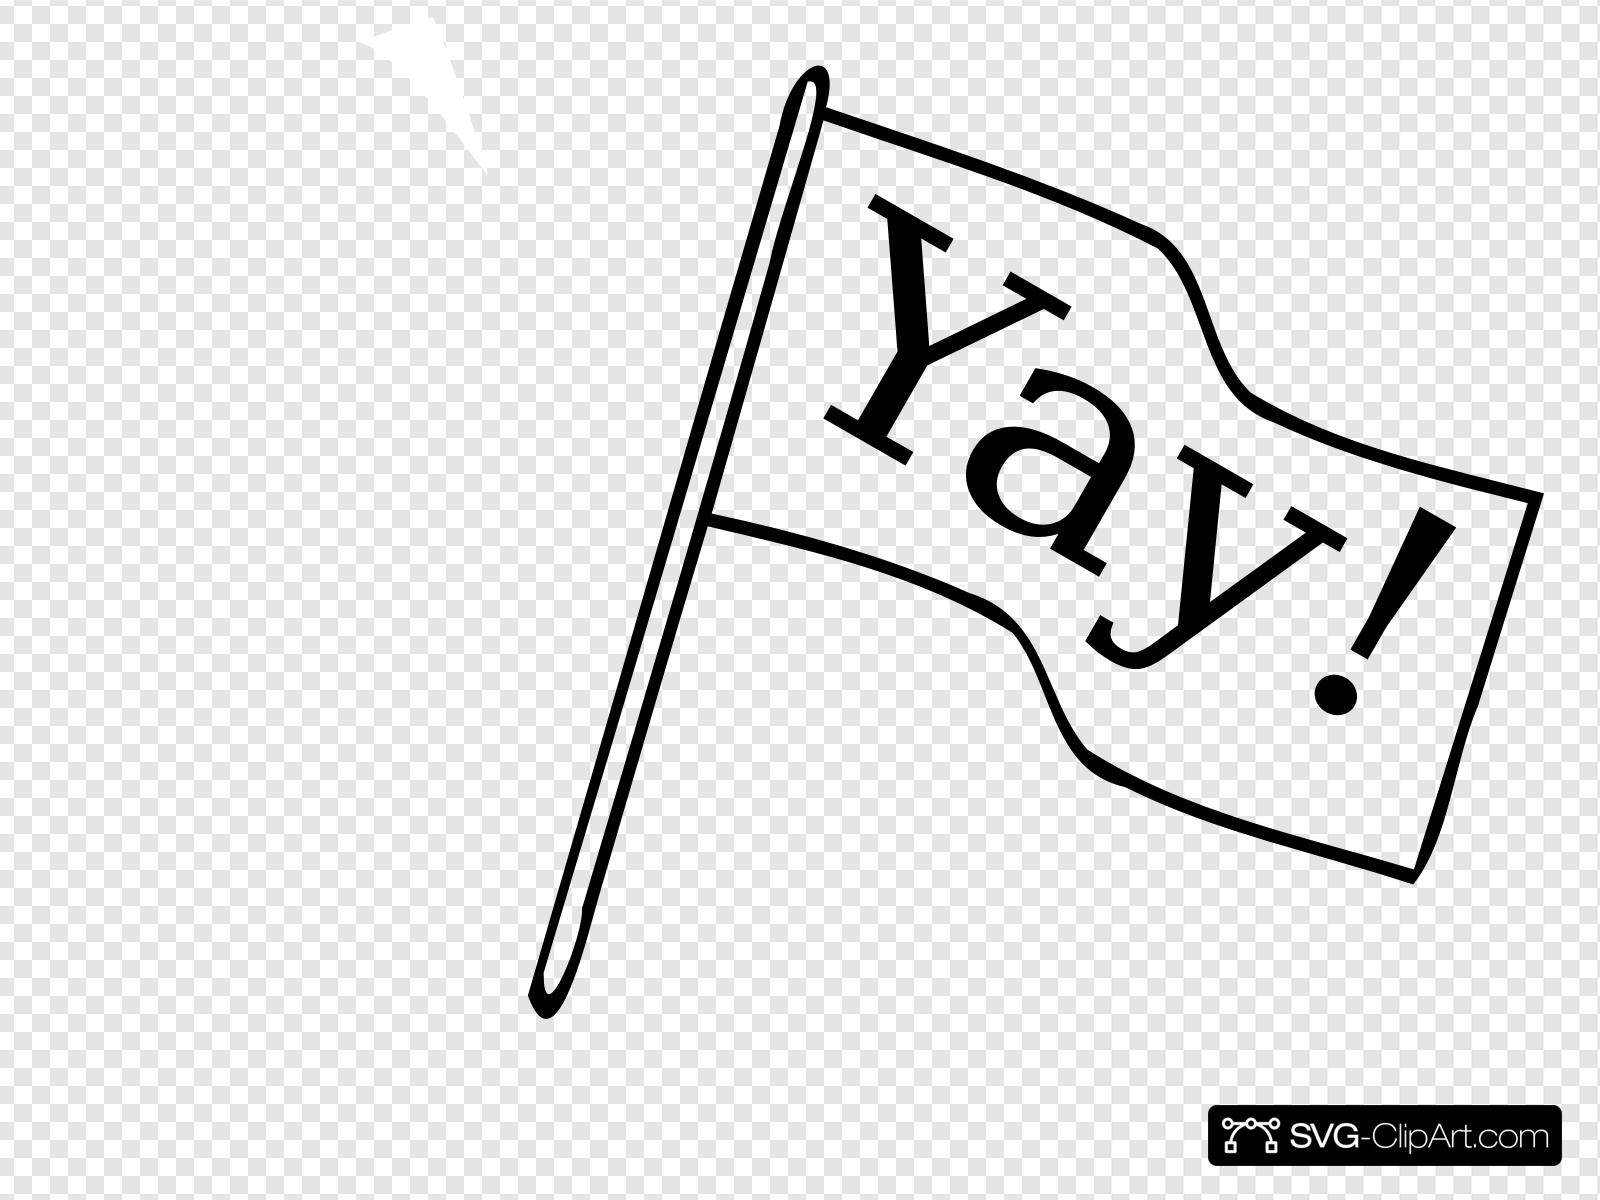 svg library library Yay clipart outline. Flag with clip art